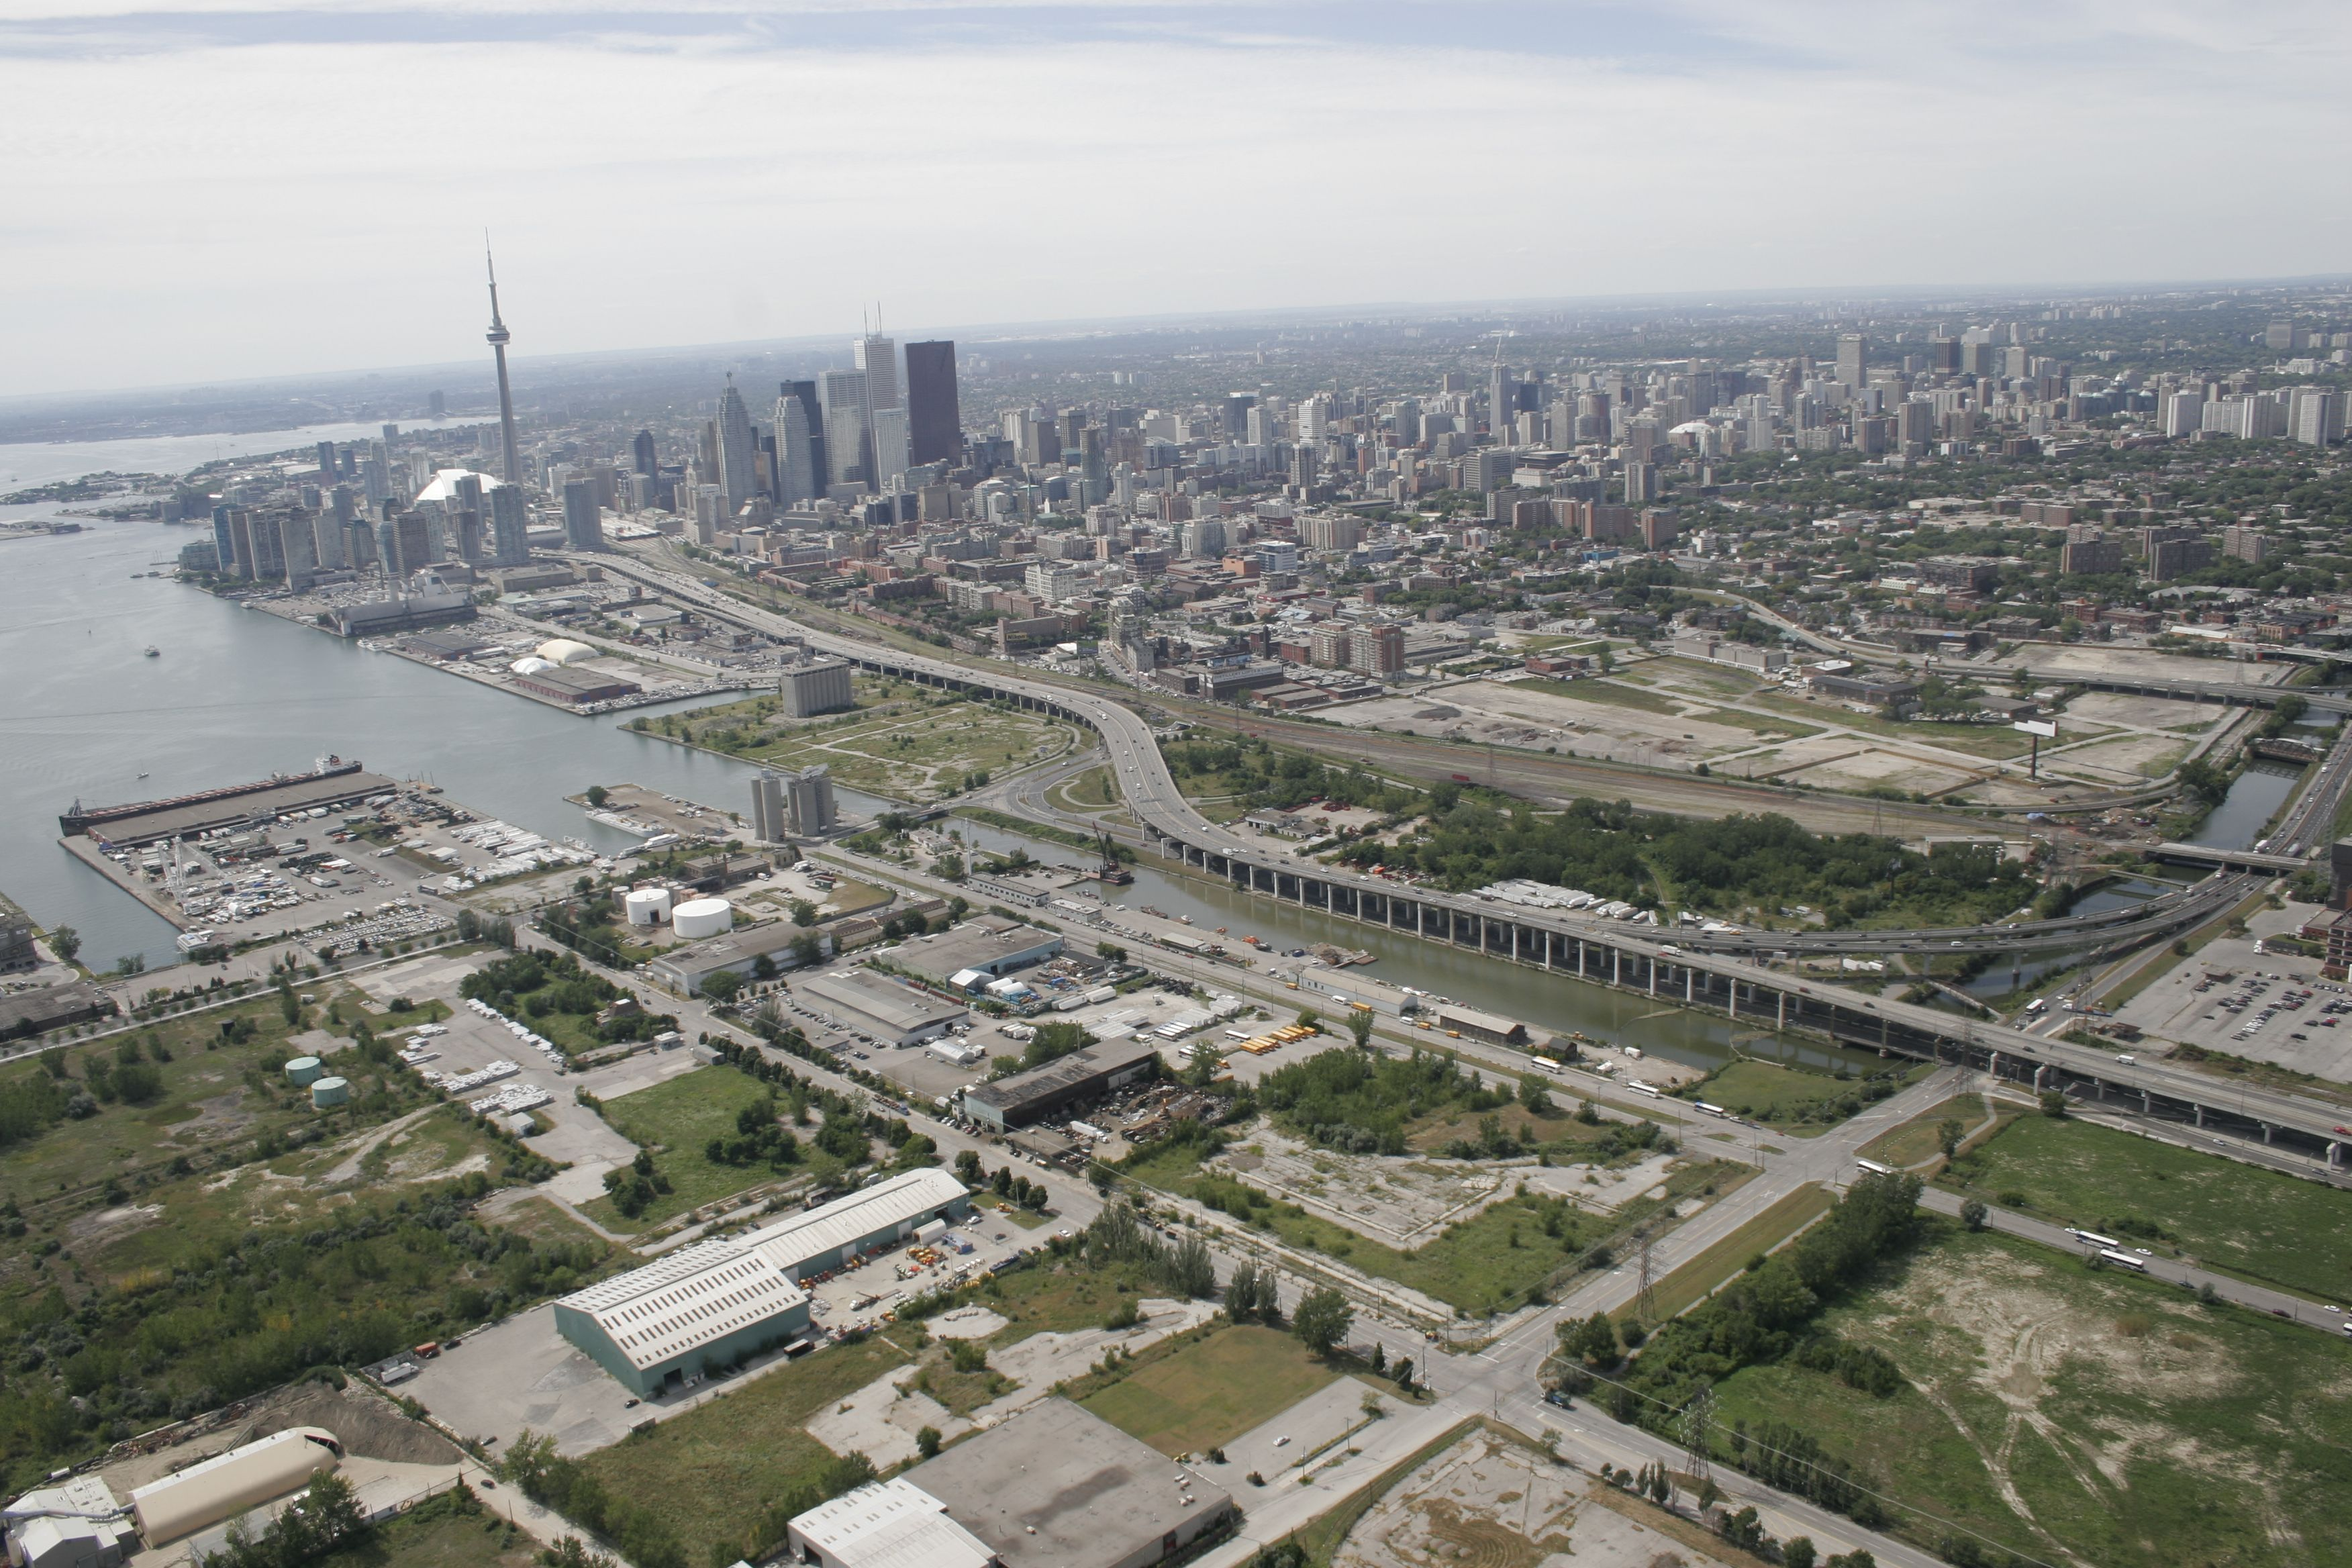 Aerial photo of the Lower Don Lands showing the Keating Channel, where the Don River currently empties into the inner harbour.